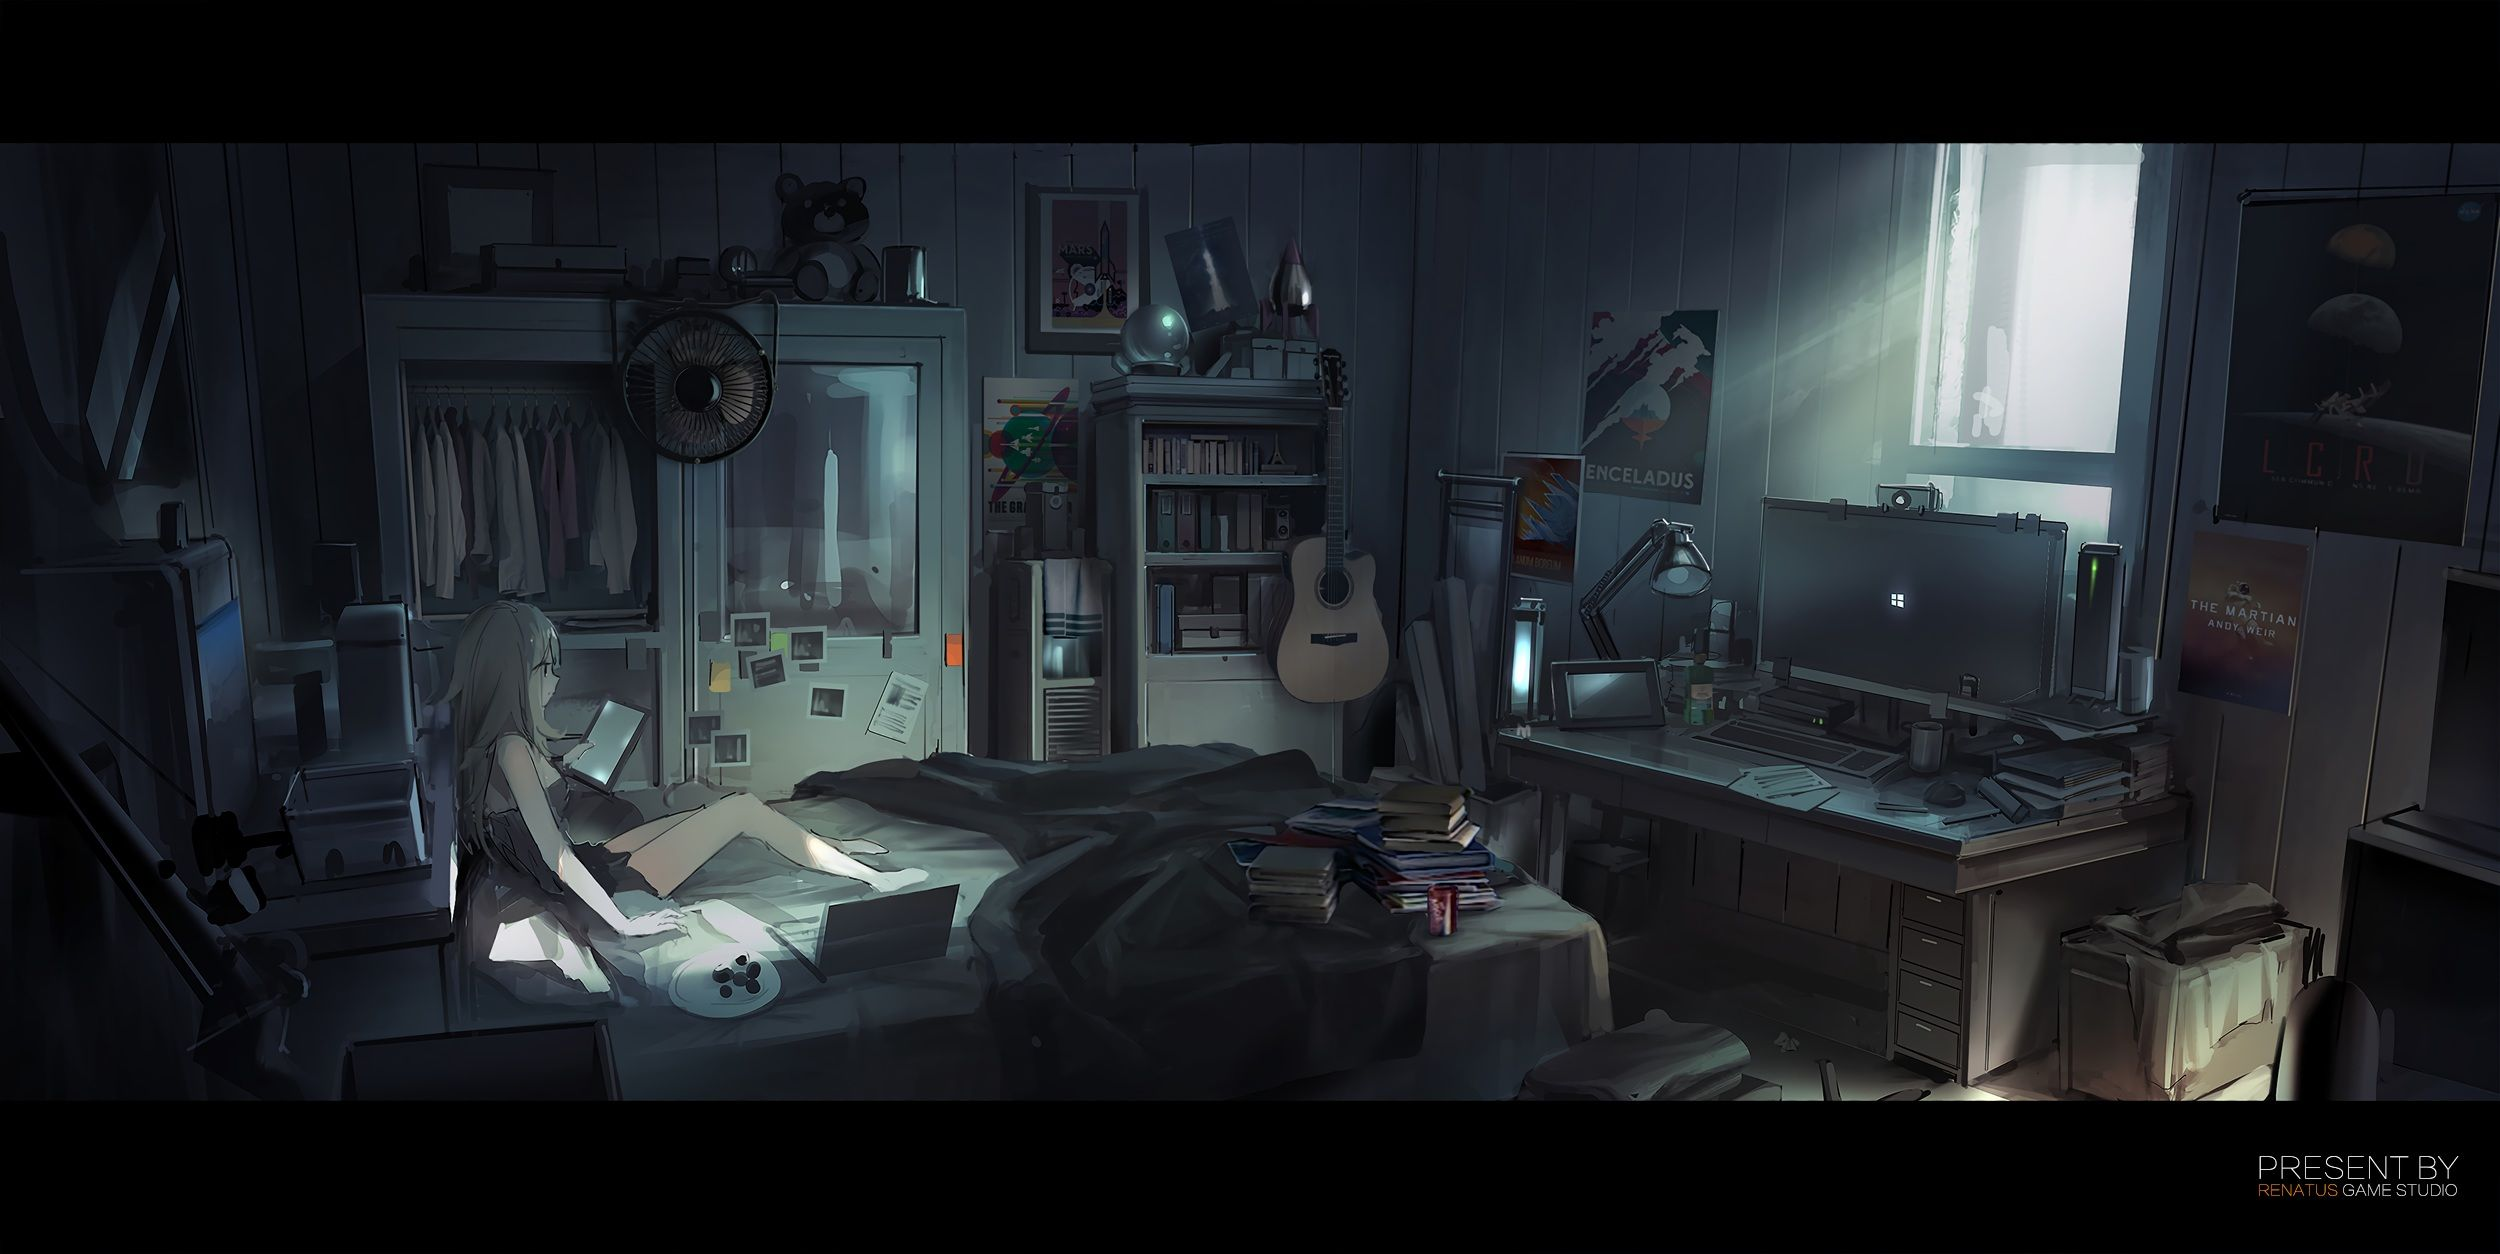 Pin By Steven Yu On Anime Visionary Wallpaper Backgrounds